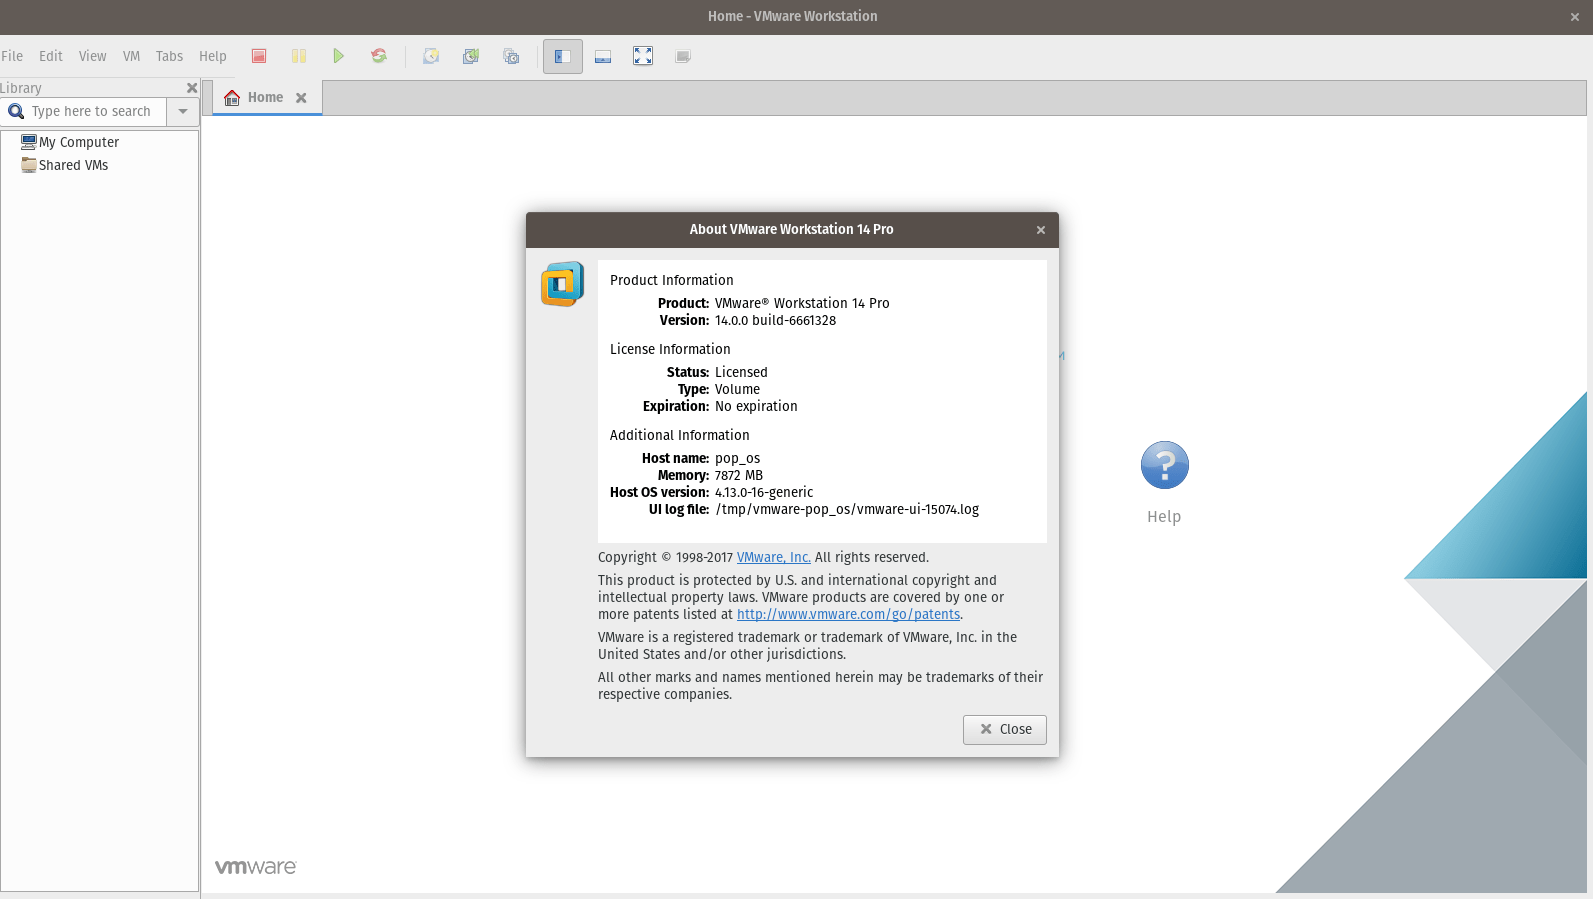 install VMWare Workstation 14.0 Pro on Ubuntu